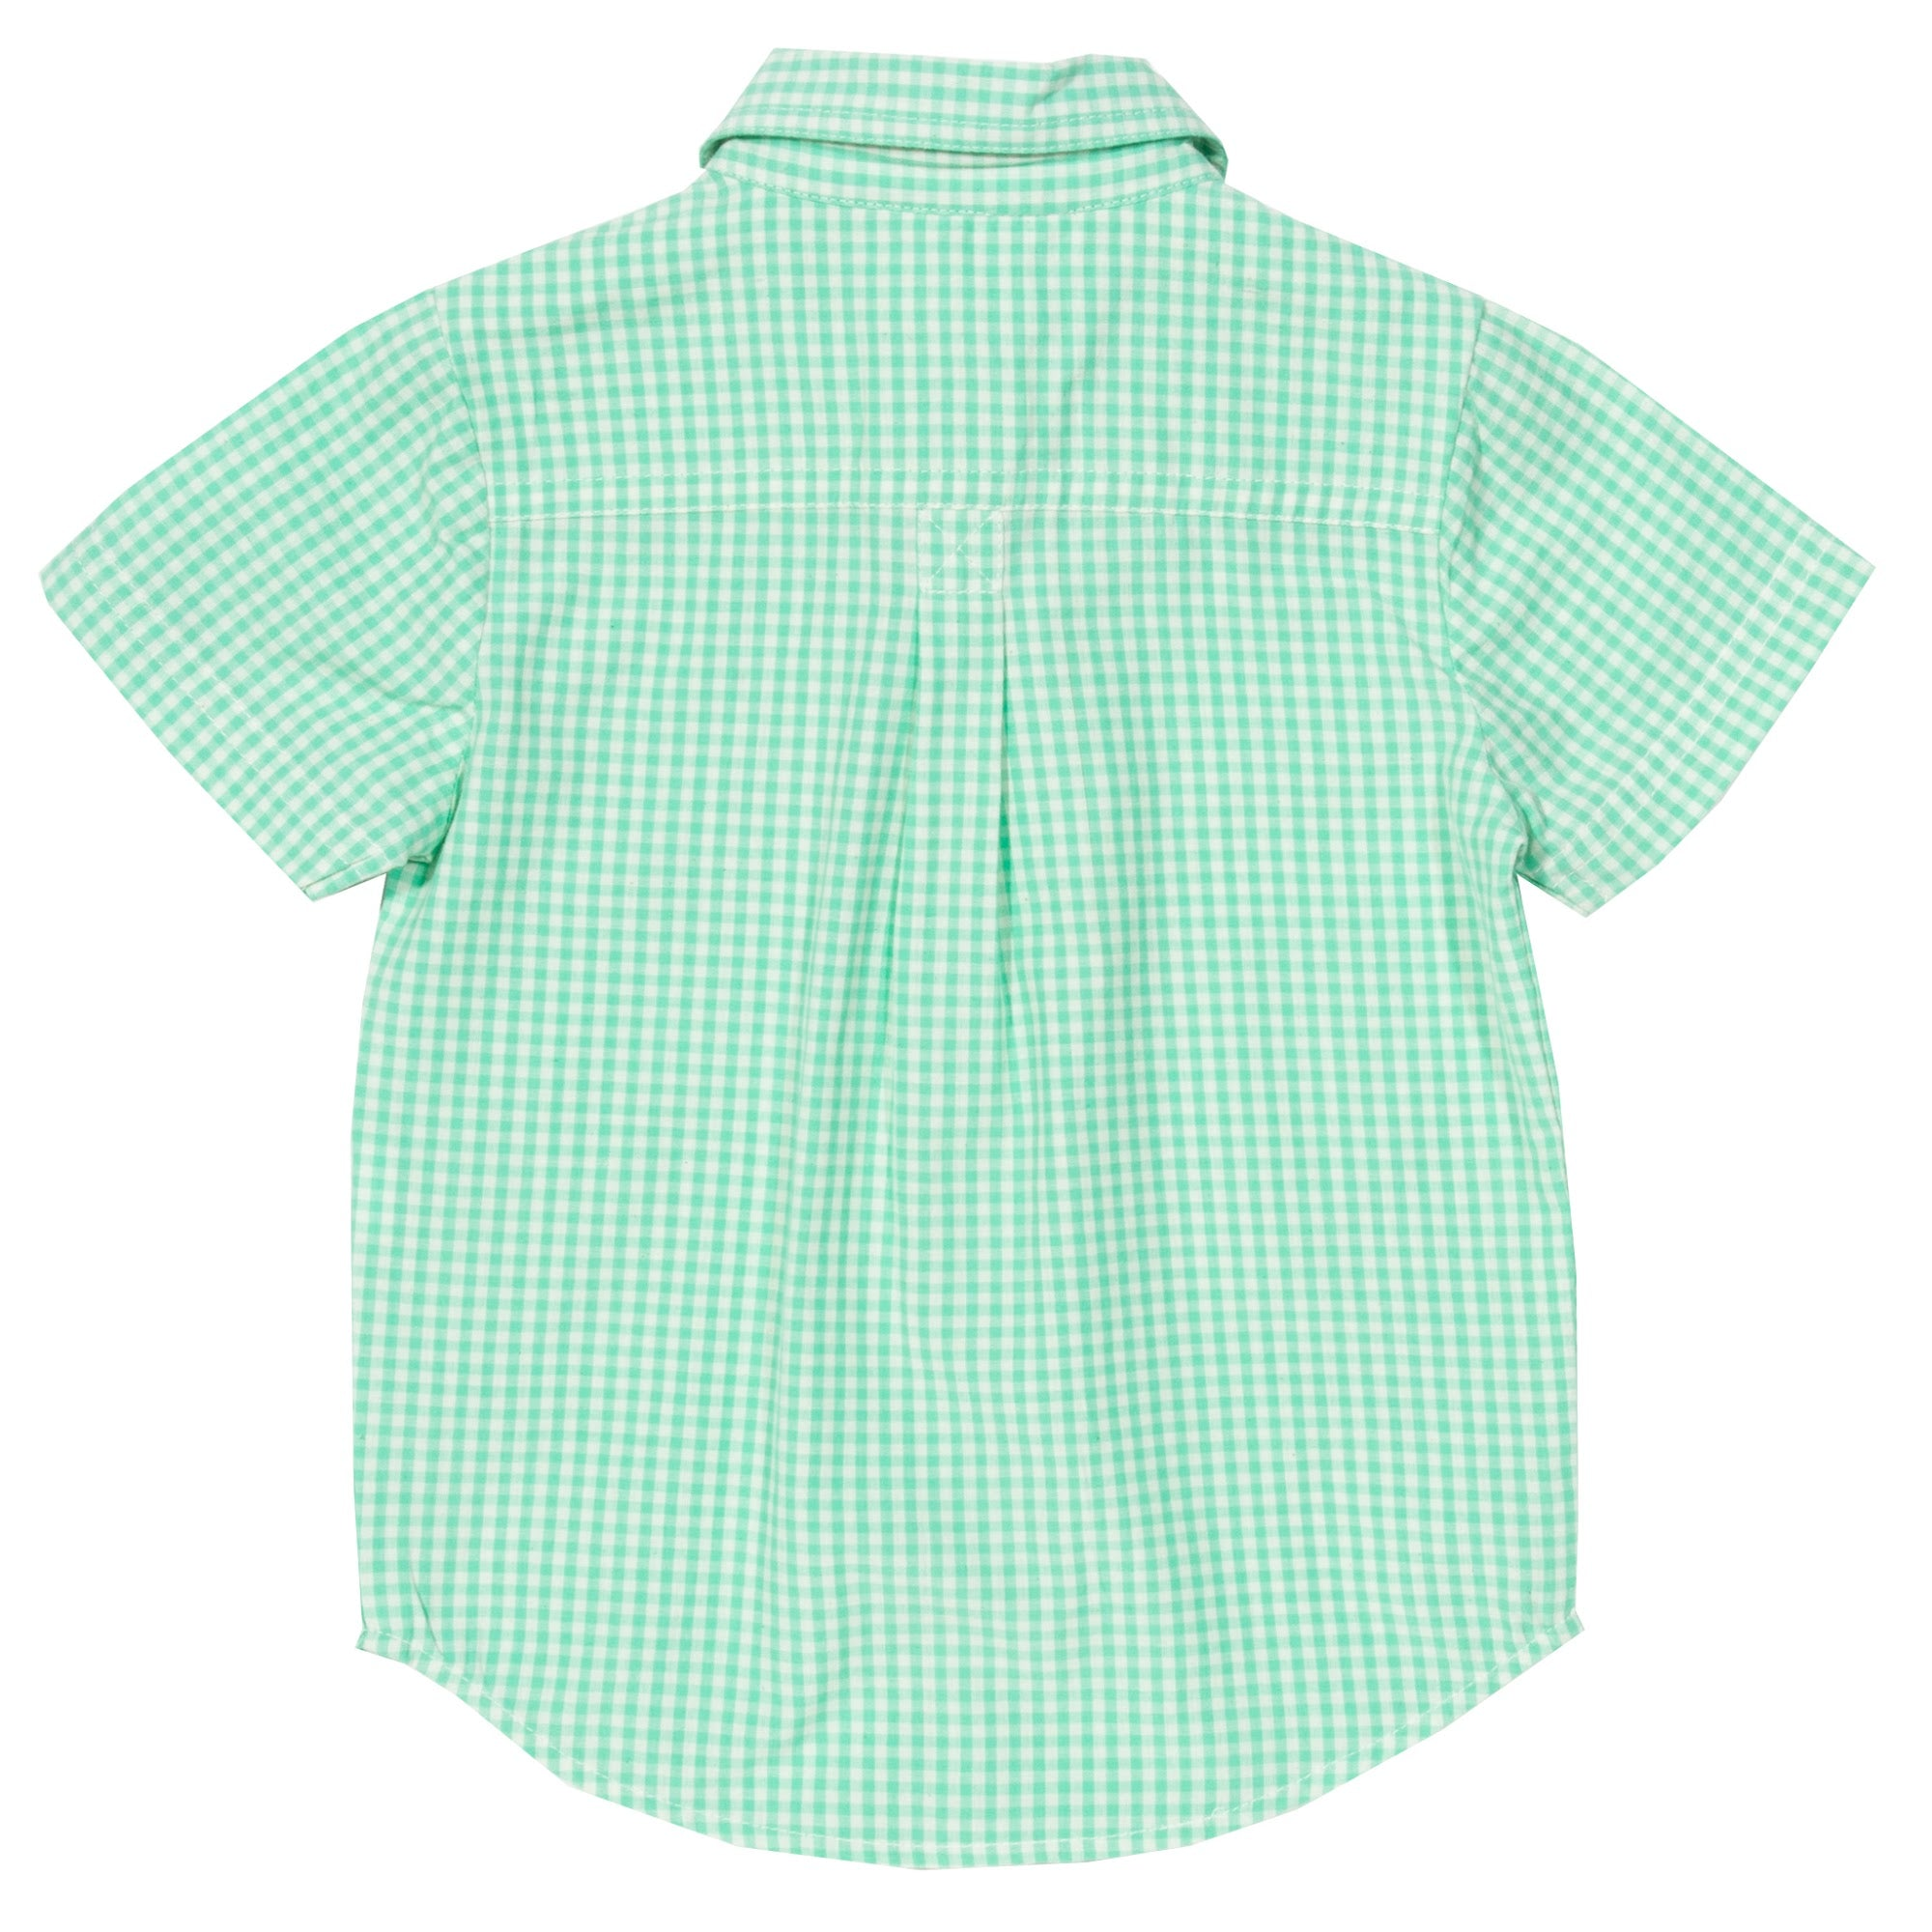 Kite Gingham Shirt